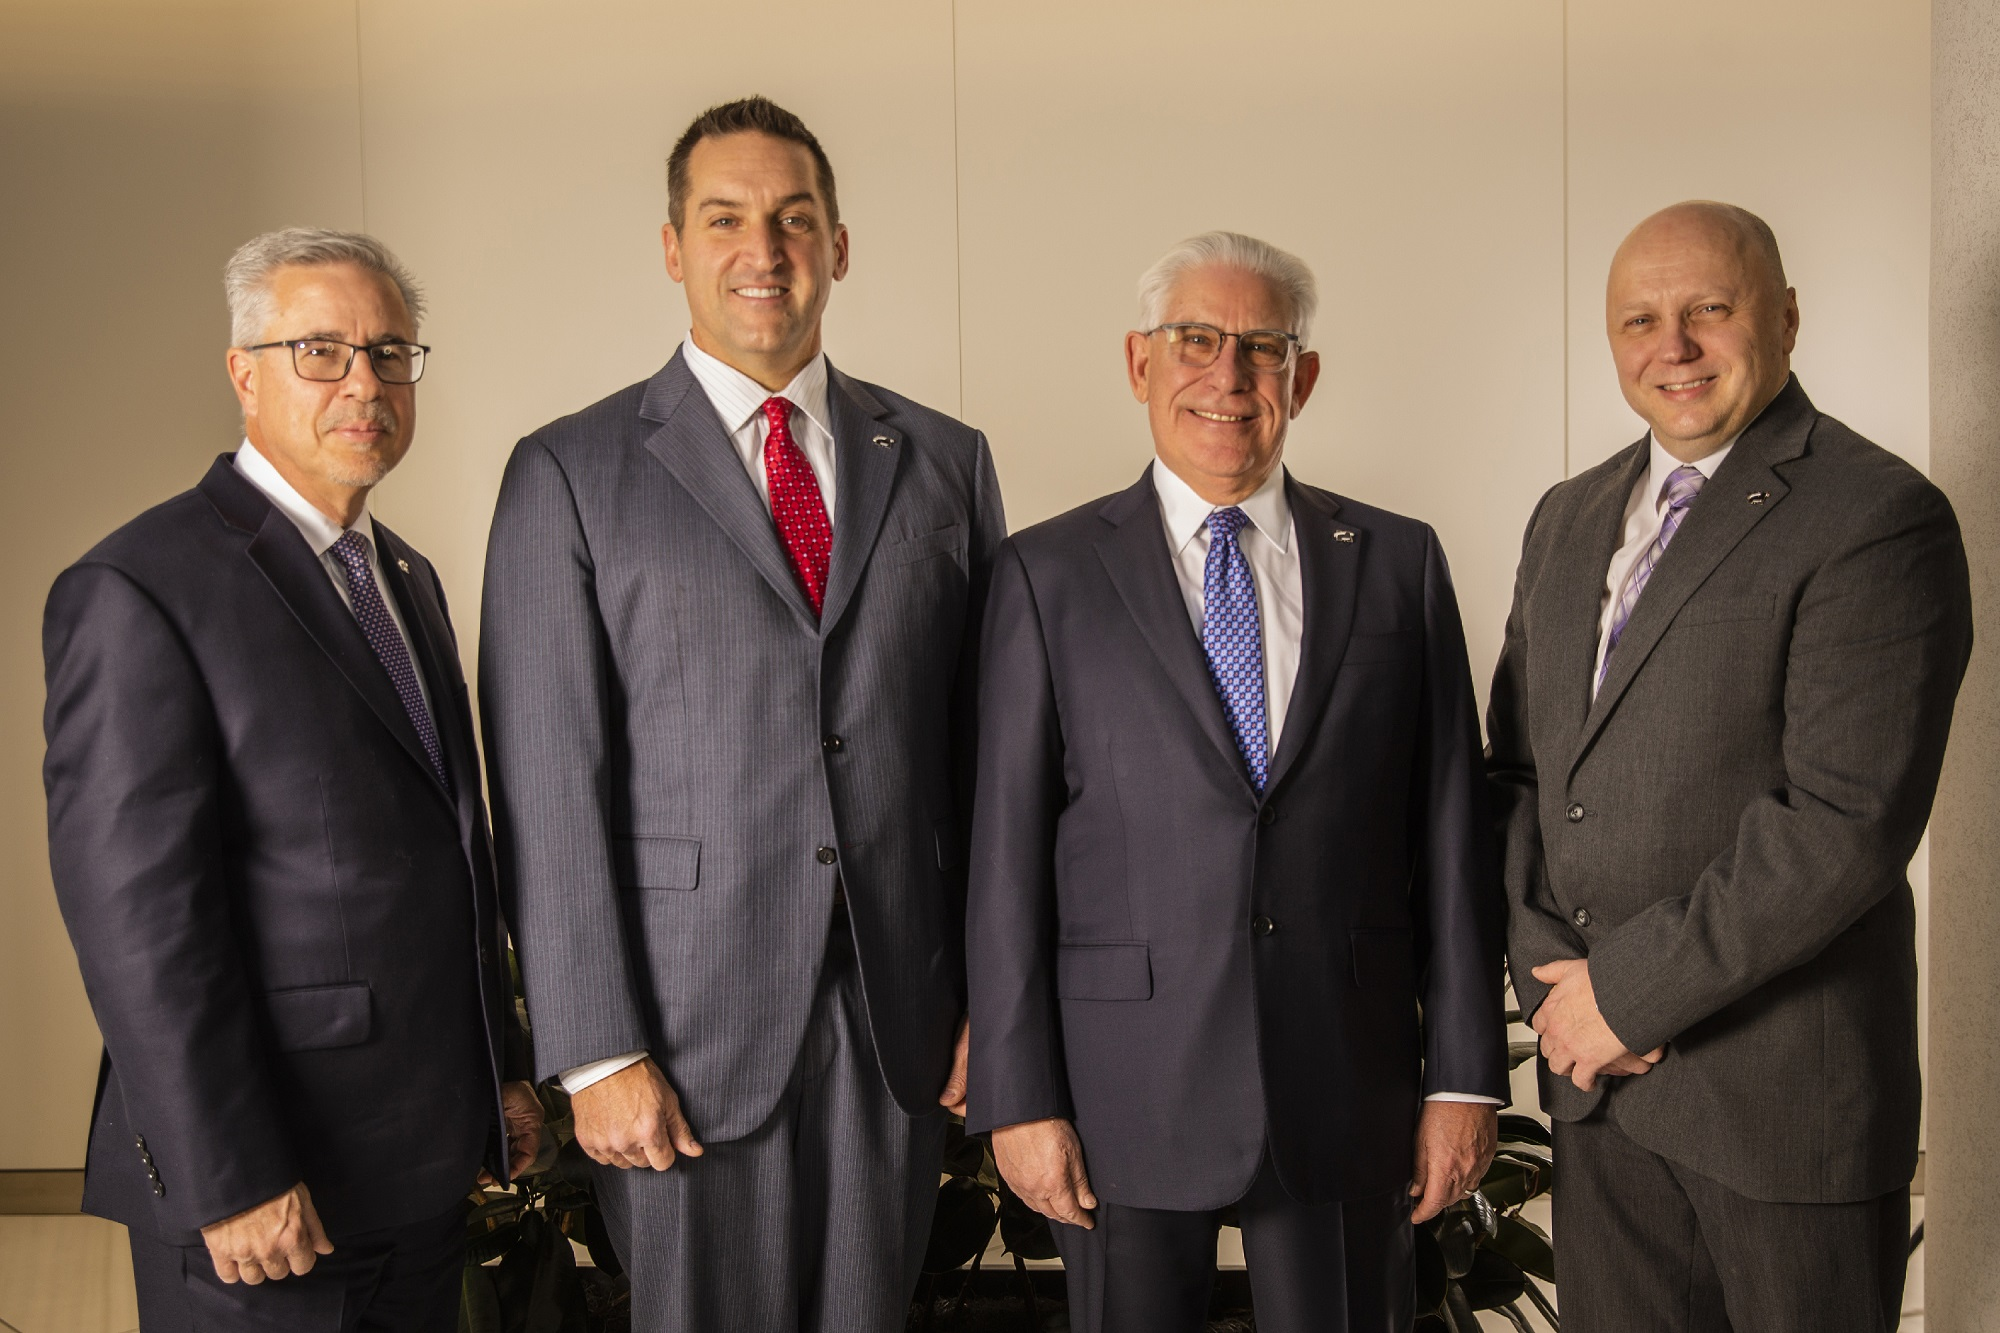 From left, Joseph Dopico, COO; Kevin Haney, CEO and president; Richard Maser, founder and executive chairman; and Leonardo Ponzio, executive vice president and chief administrative officer.- MASER CONSULTING